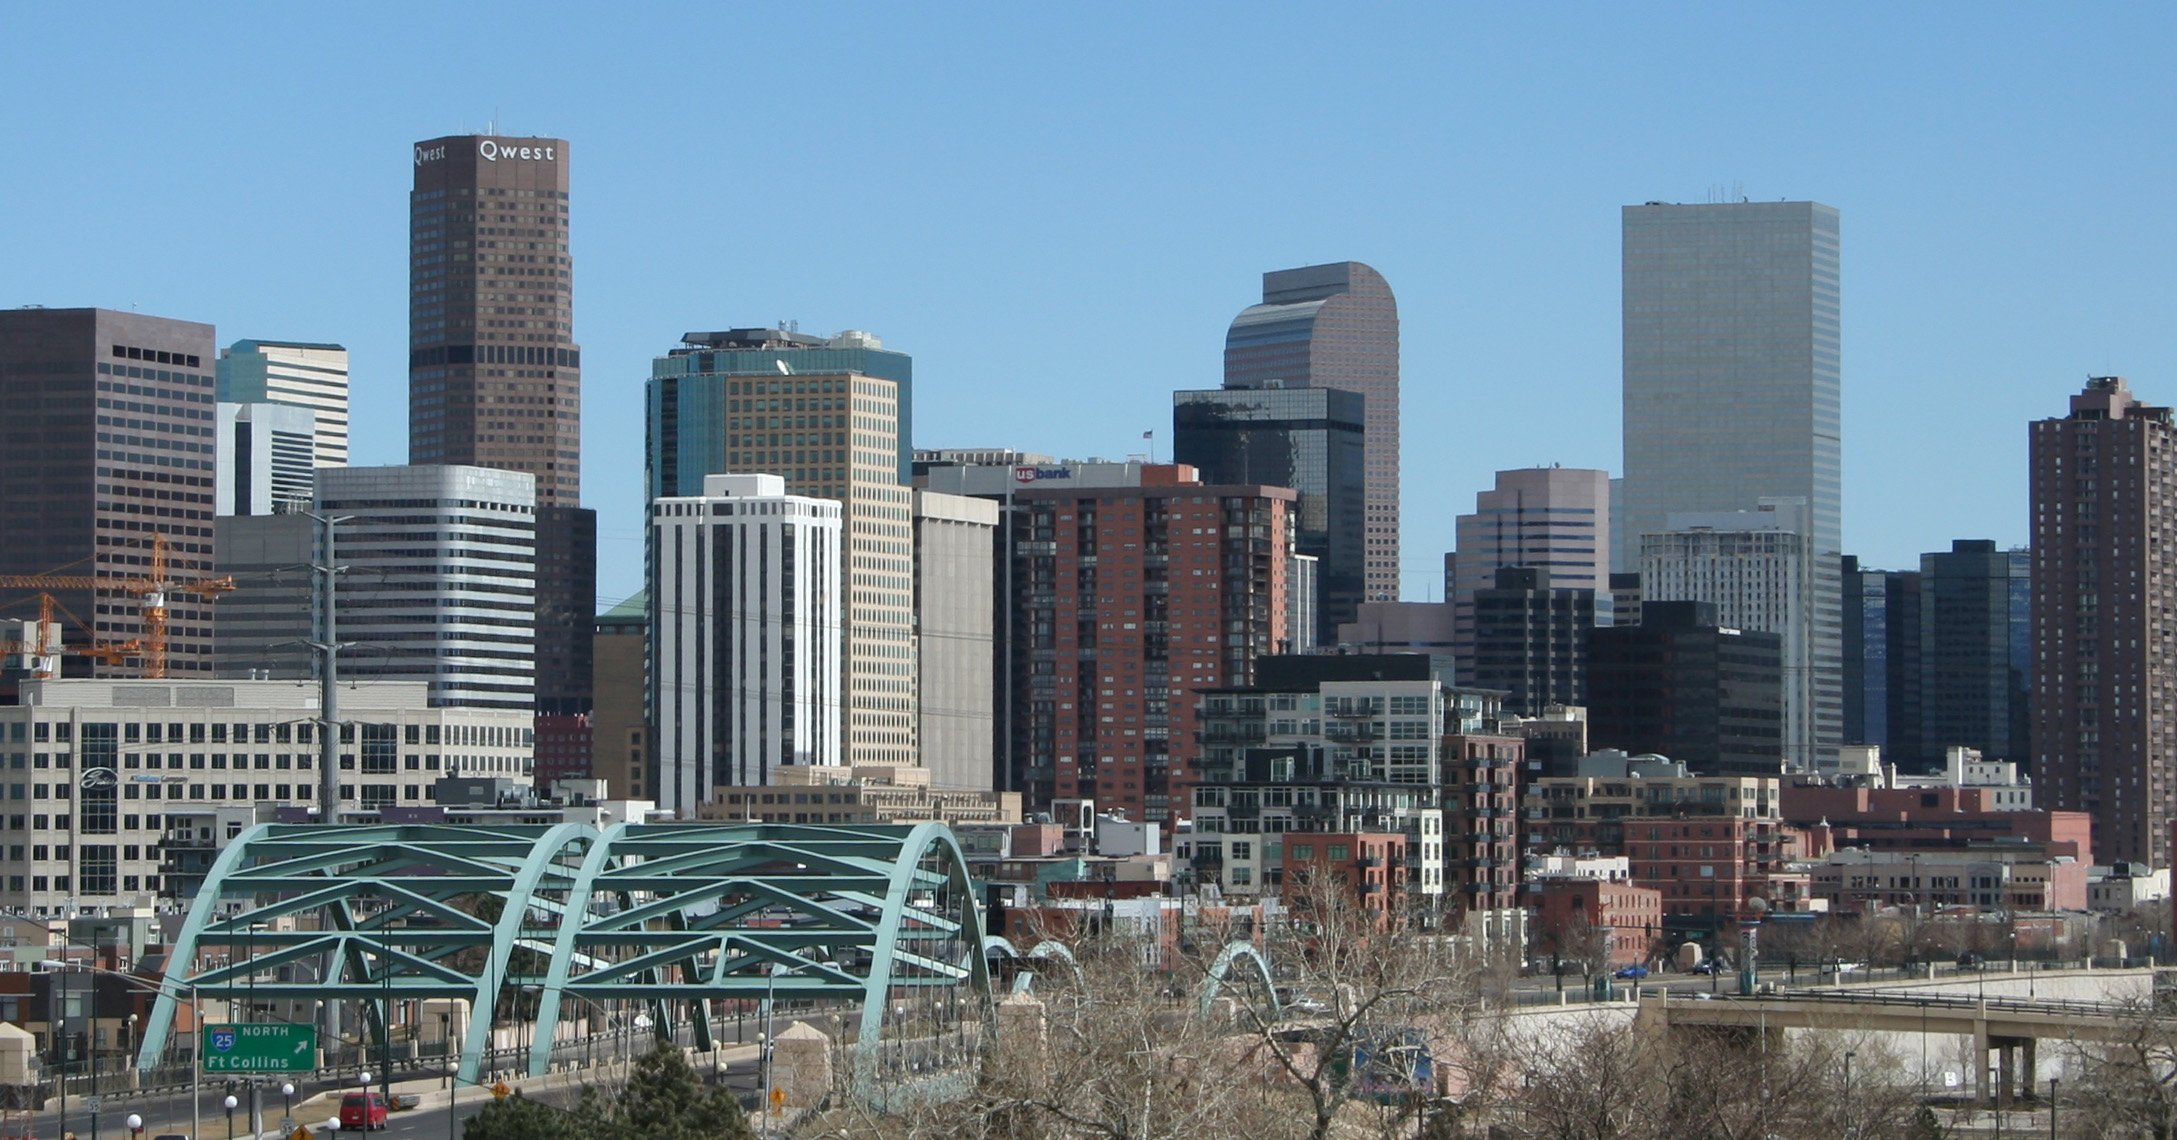 2006-03-26_Denver_Skyline_I-25_Speer